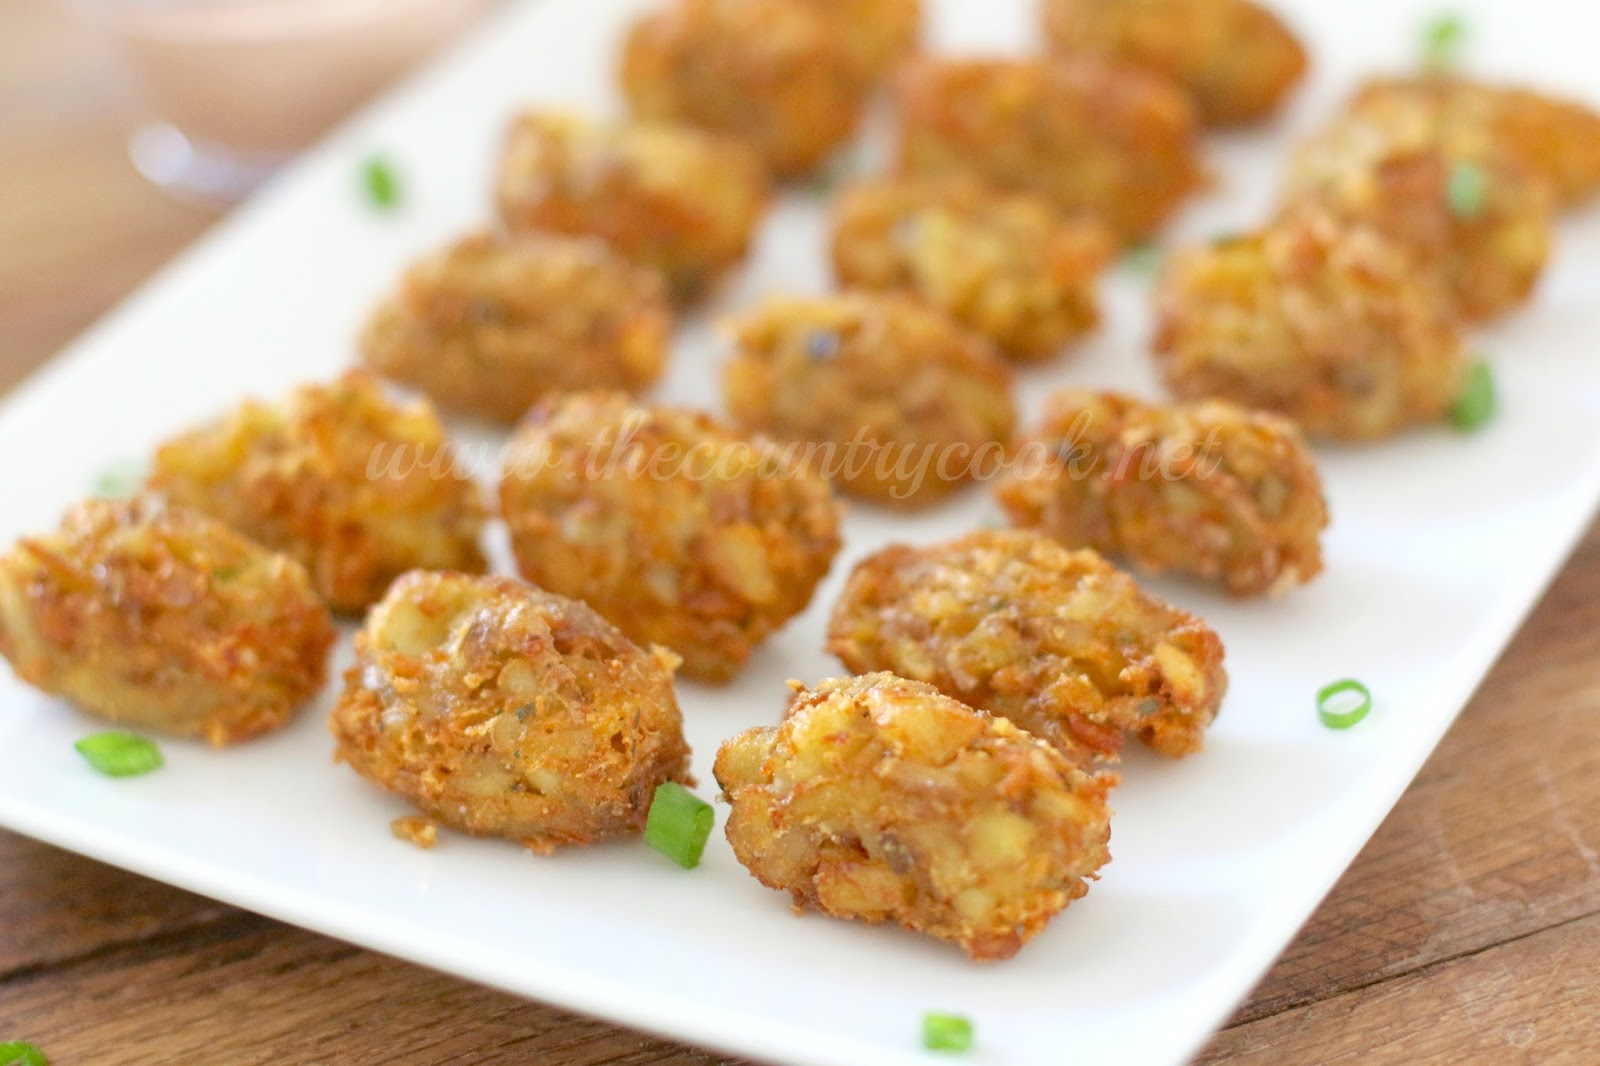 How to Prepare Homemade Tater Tots images